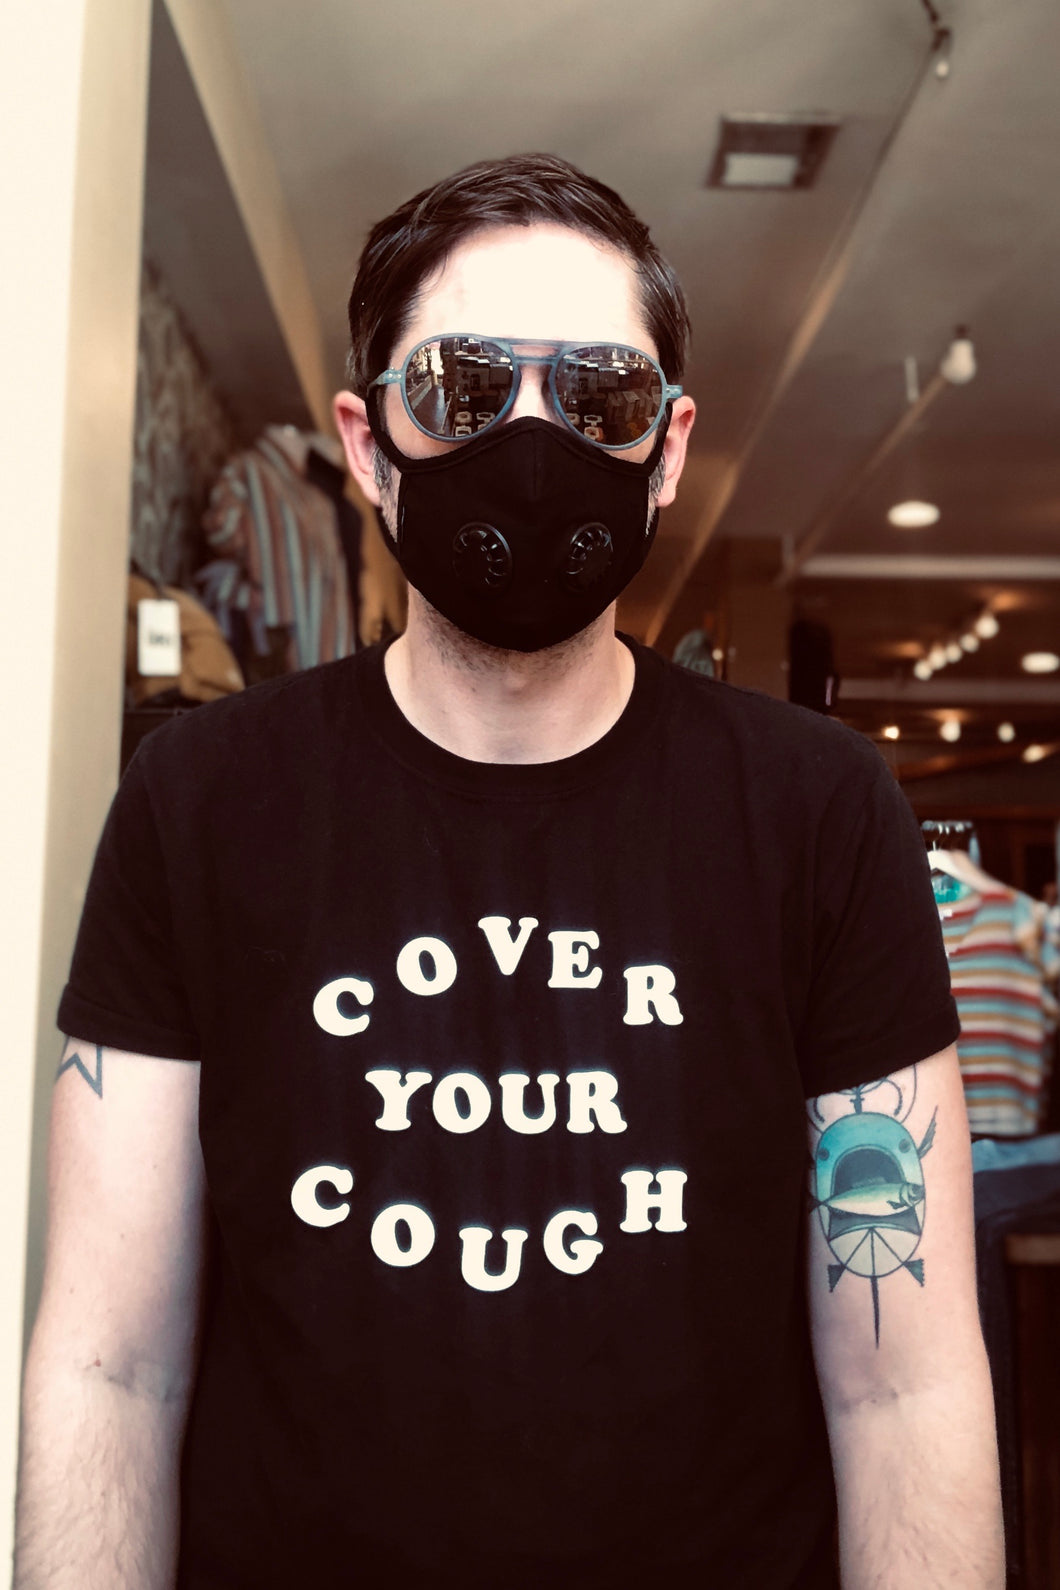 Cover Your Cough Tee - Tigertree